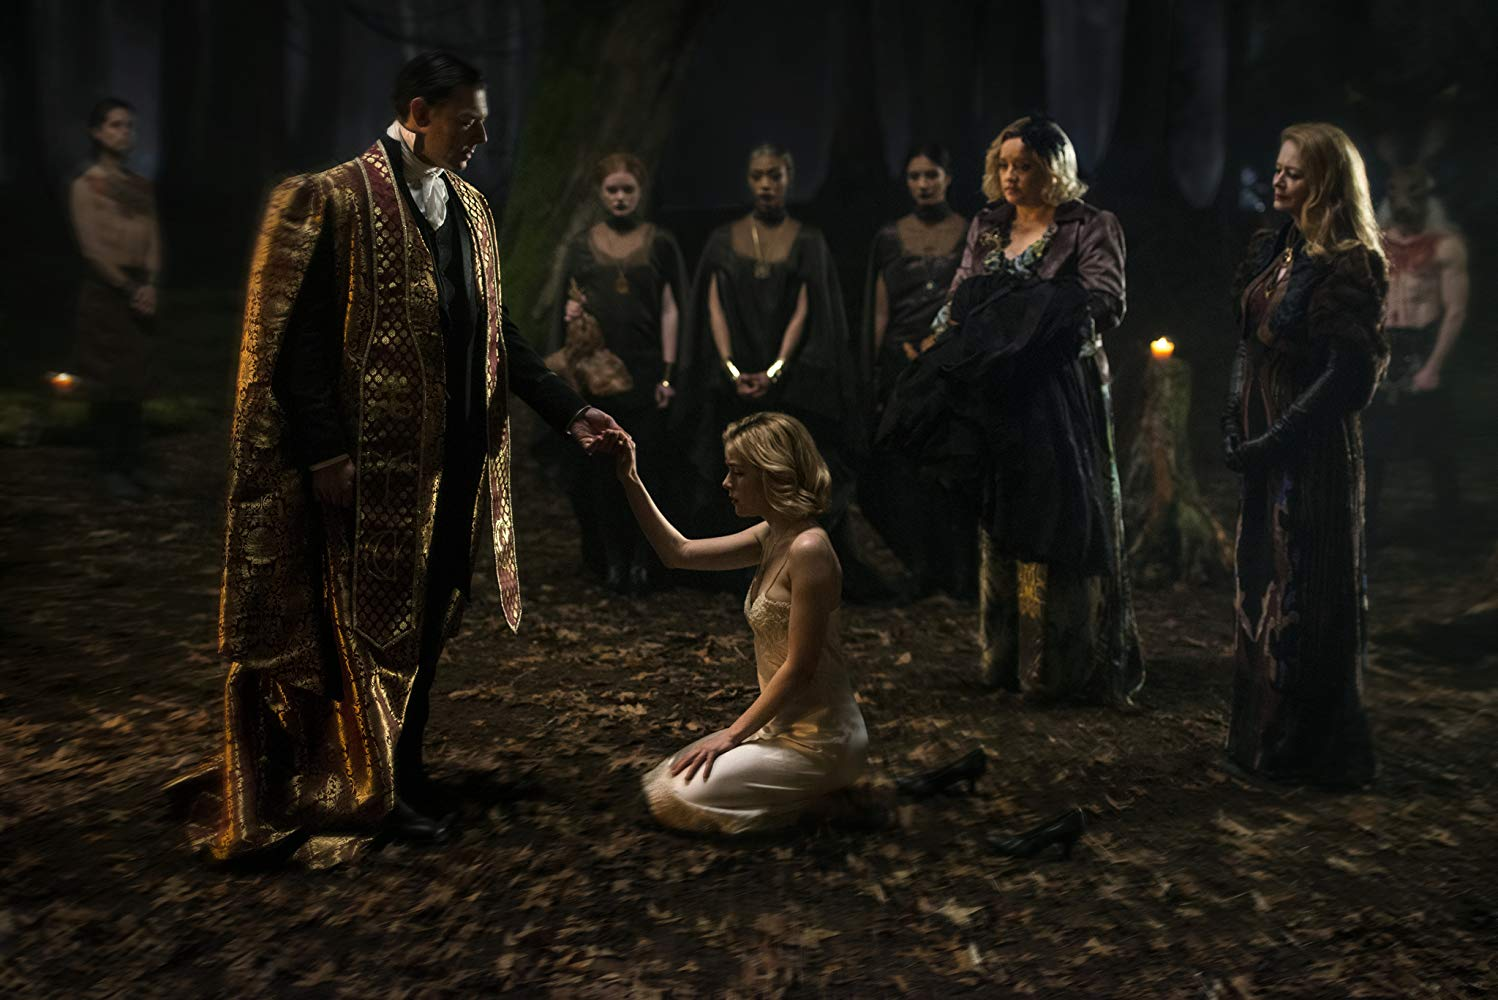 Sabrina getting ready for the Dark Baptism on The Chilling Adventures of Sabrina